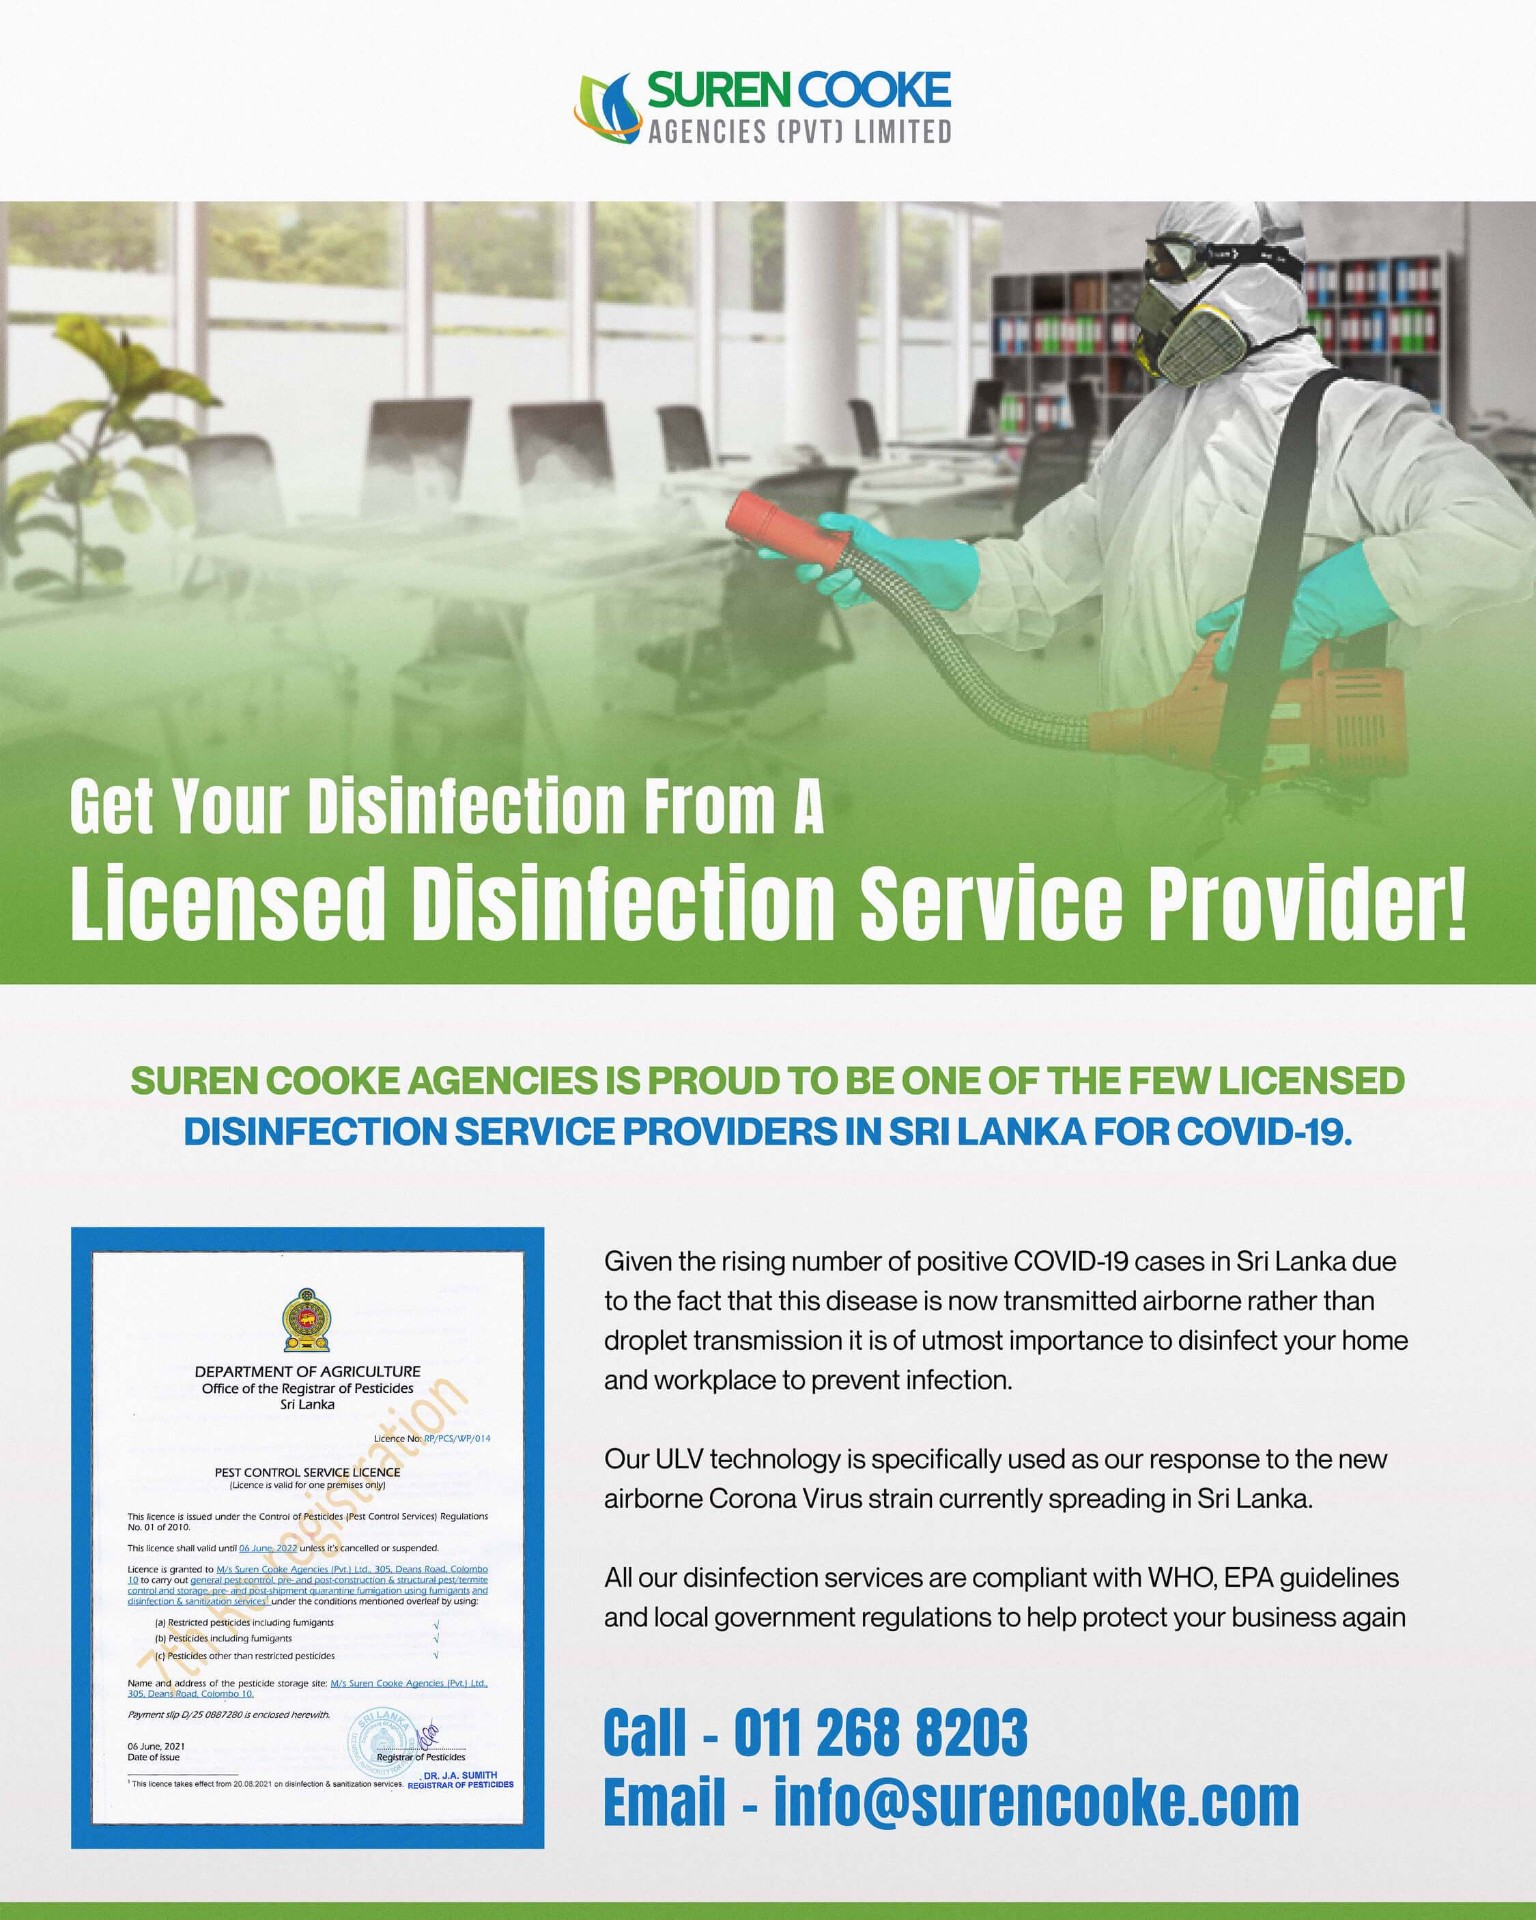 Disinfection Services from Suren Cooke Agencies